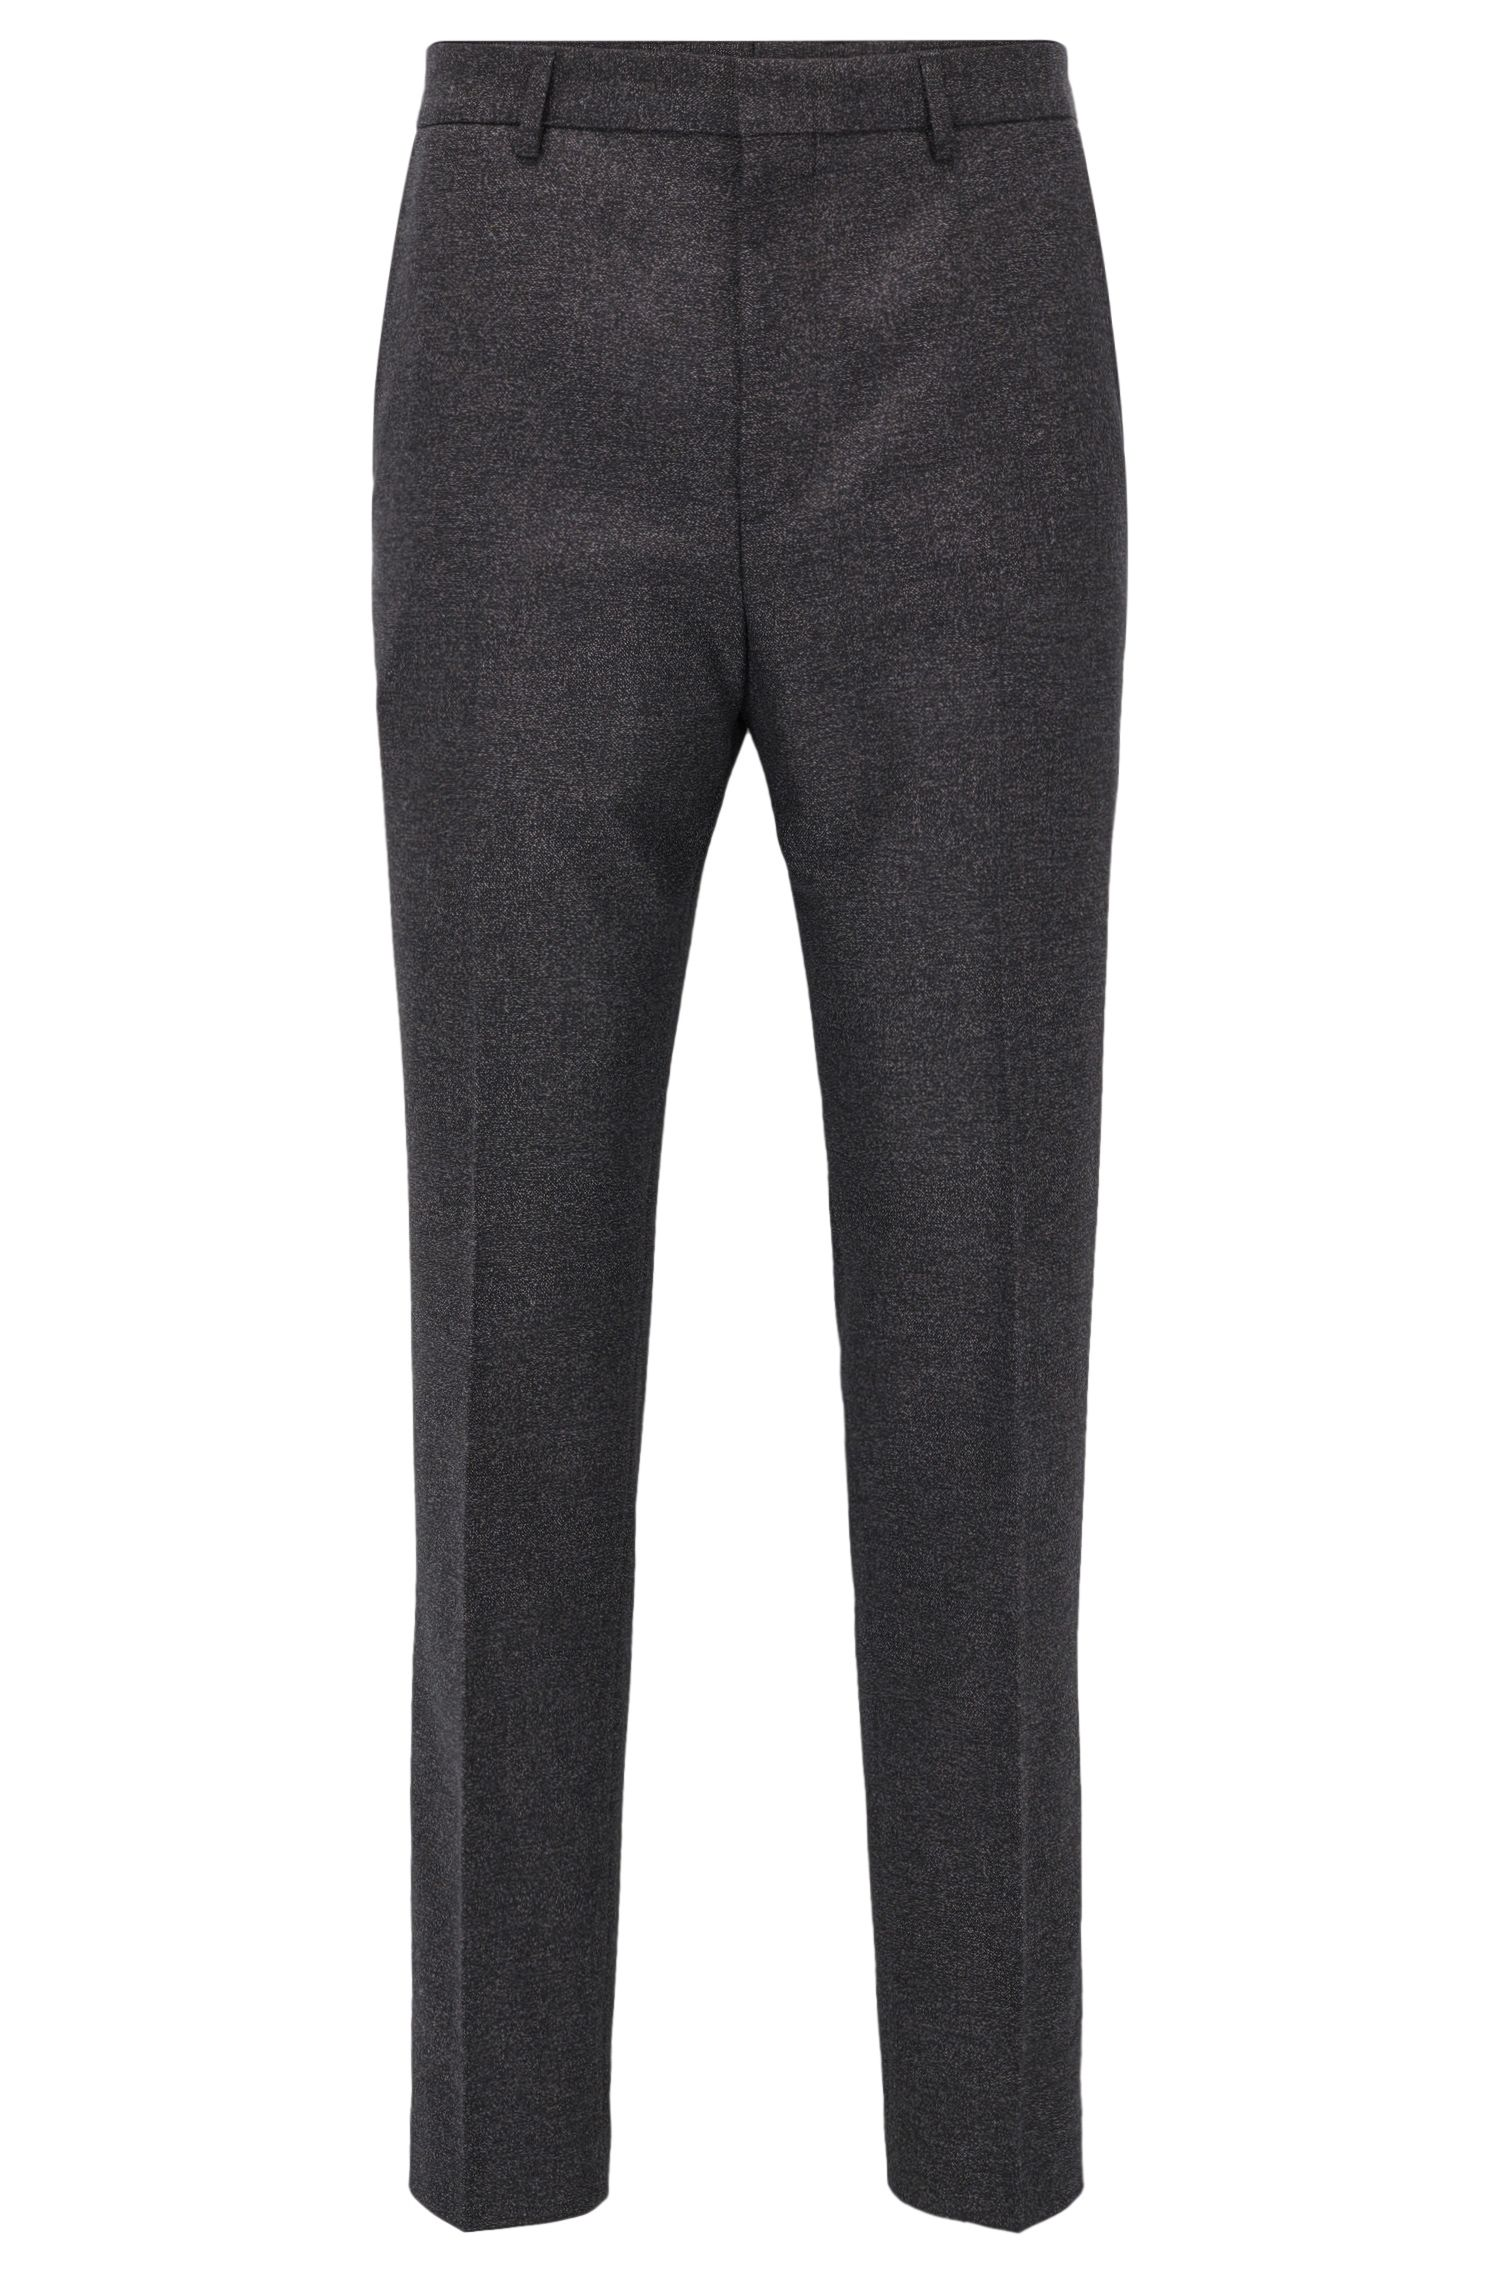 Slim-fit trousers in a mélange cotton blend